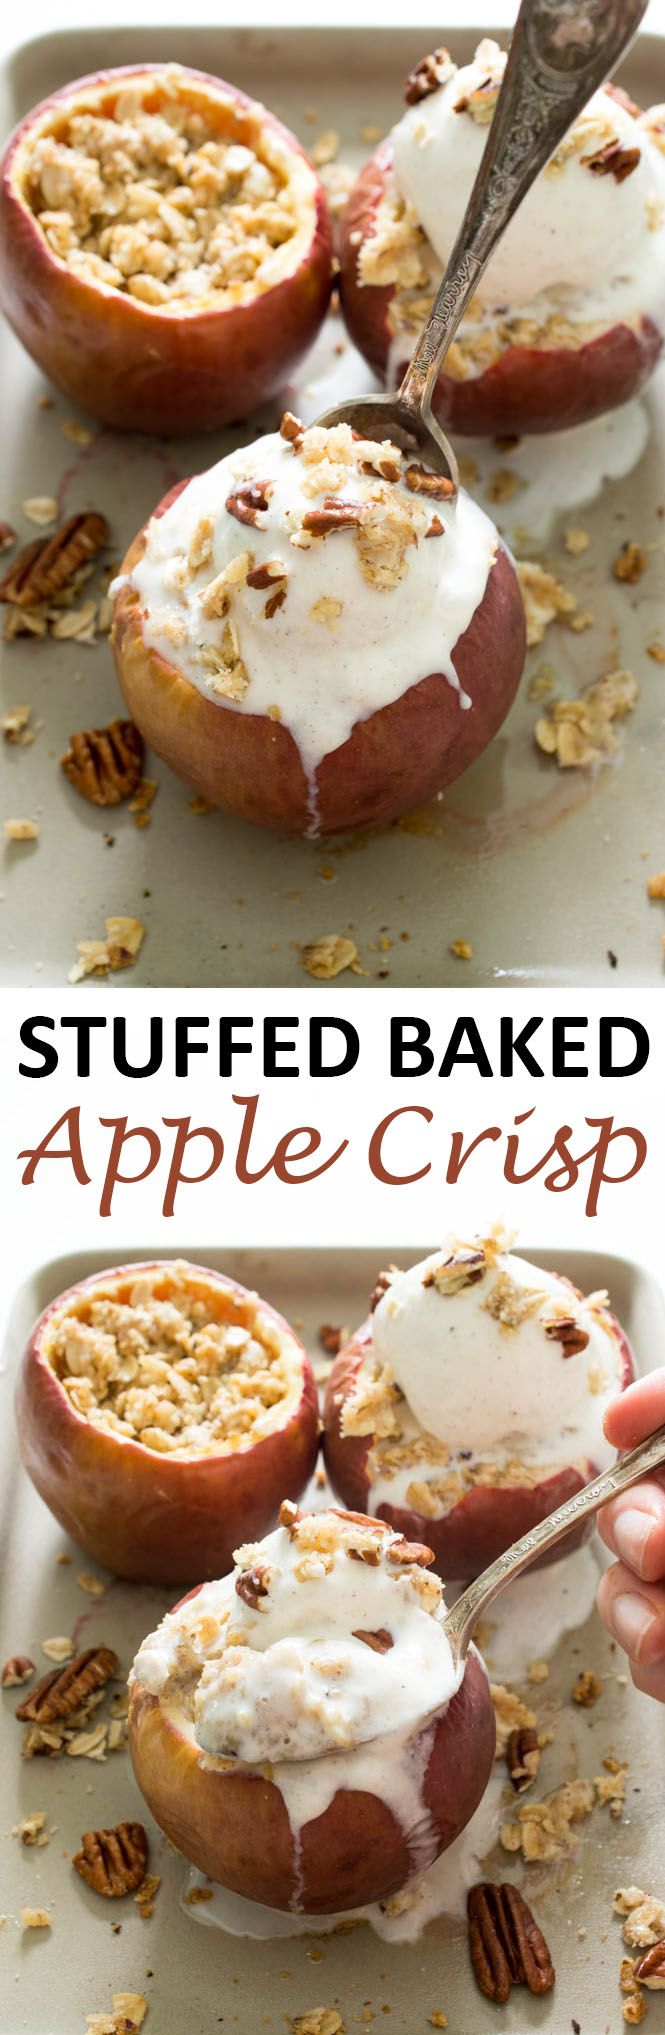 Stuffed Baked Apple Crisp | Recipe | Baked Apple Crisps, Baked Apples ...